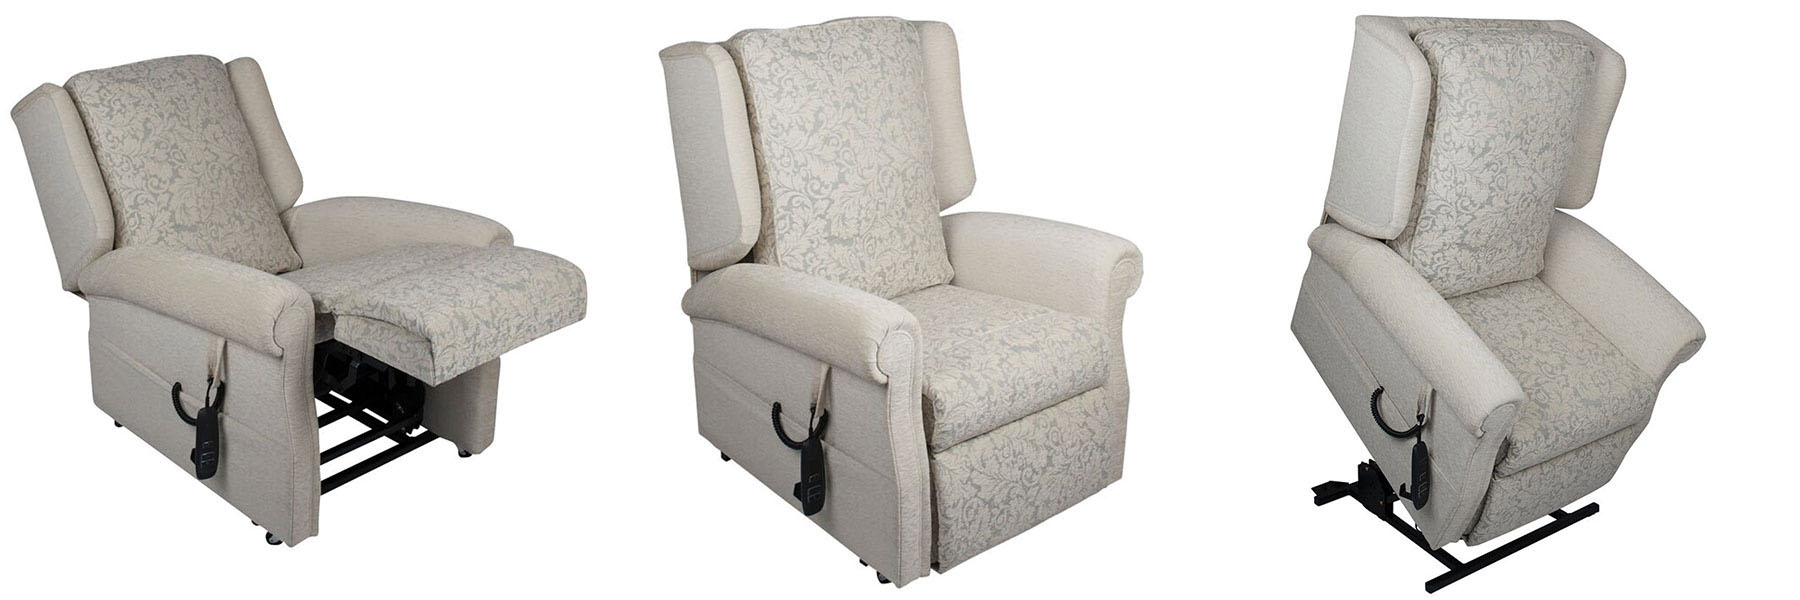 The Sandringham rise and recliner chairs